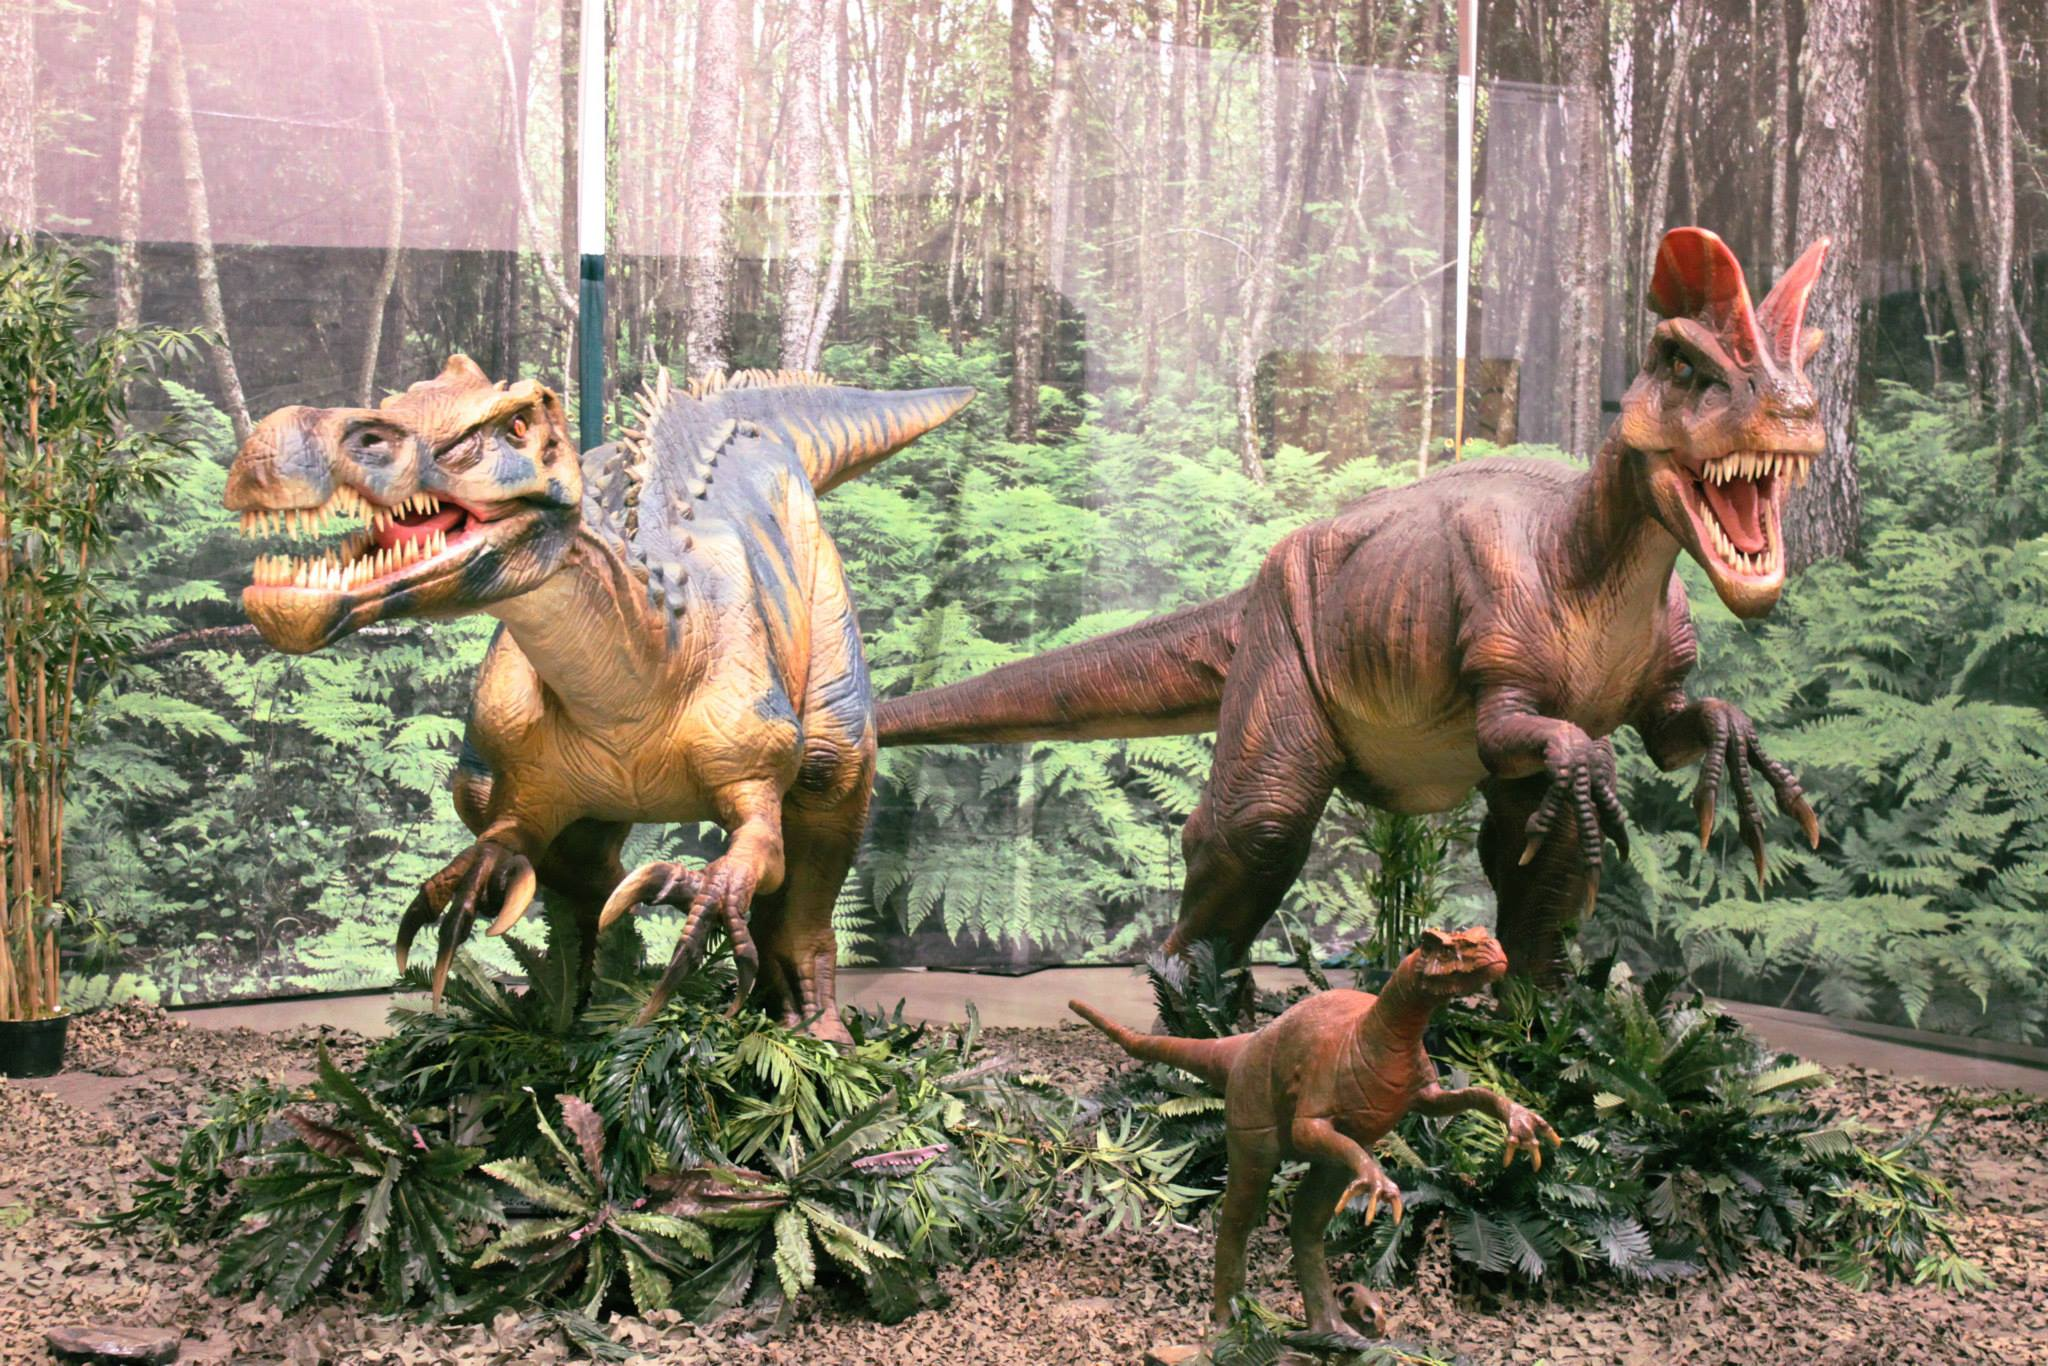 Discover the Dinosaurs is a sprawling exhibit of dinosaurs, fun and more at the Columbia Metropolitan Convention Center July 4-6, 2014.